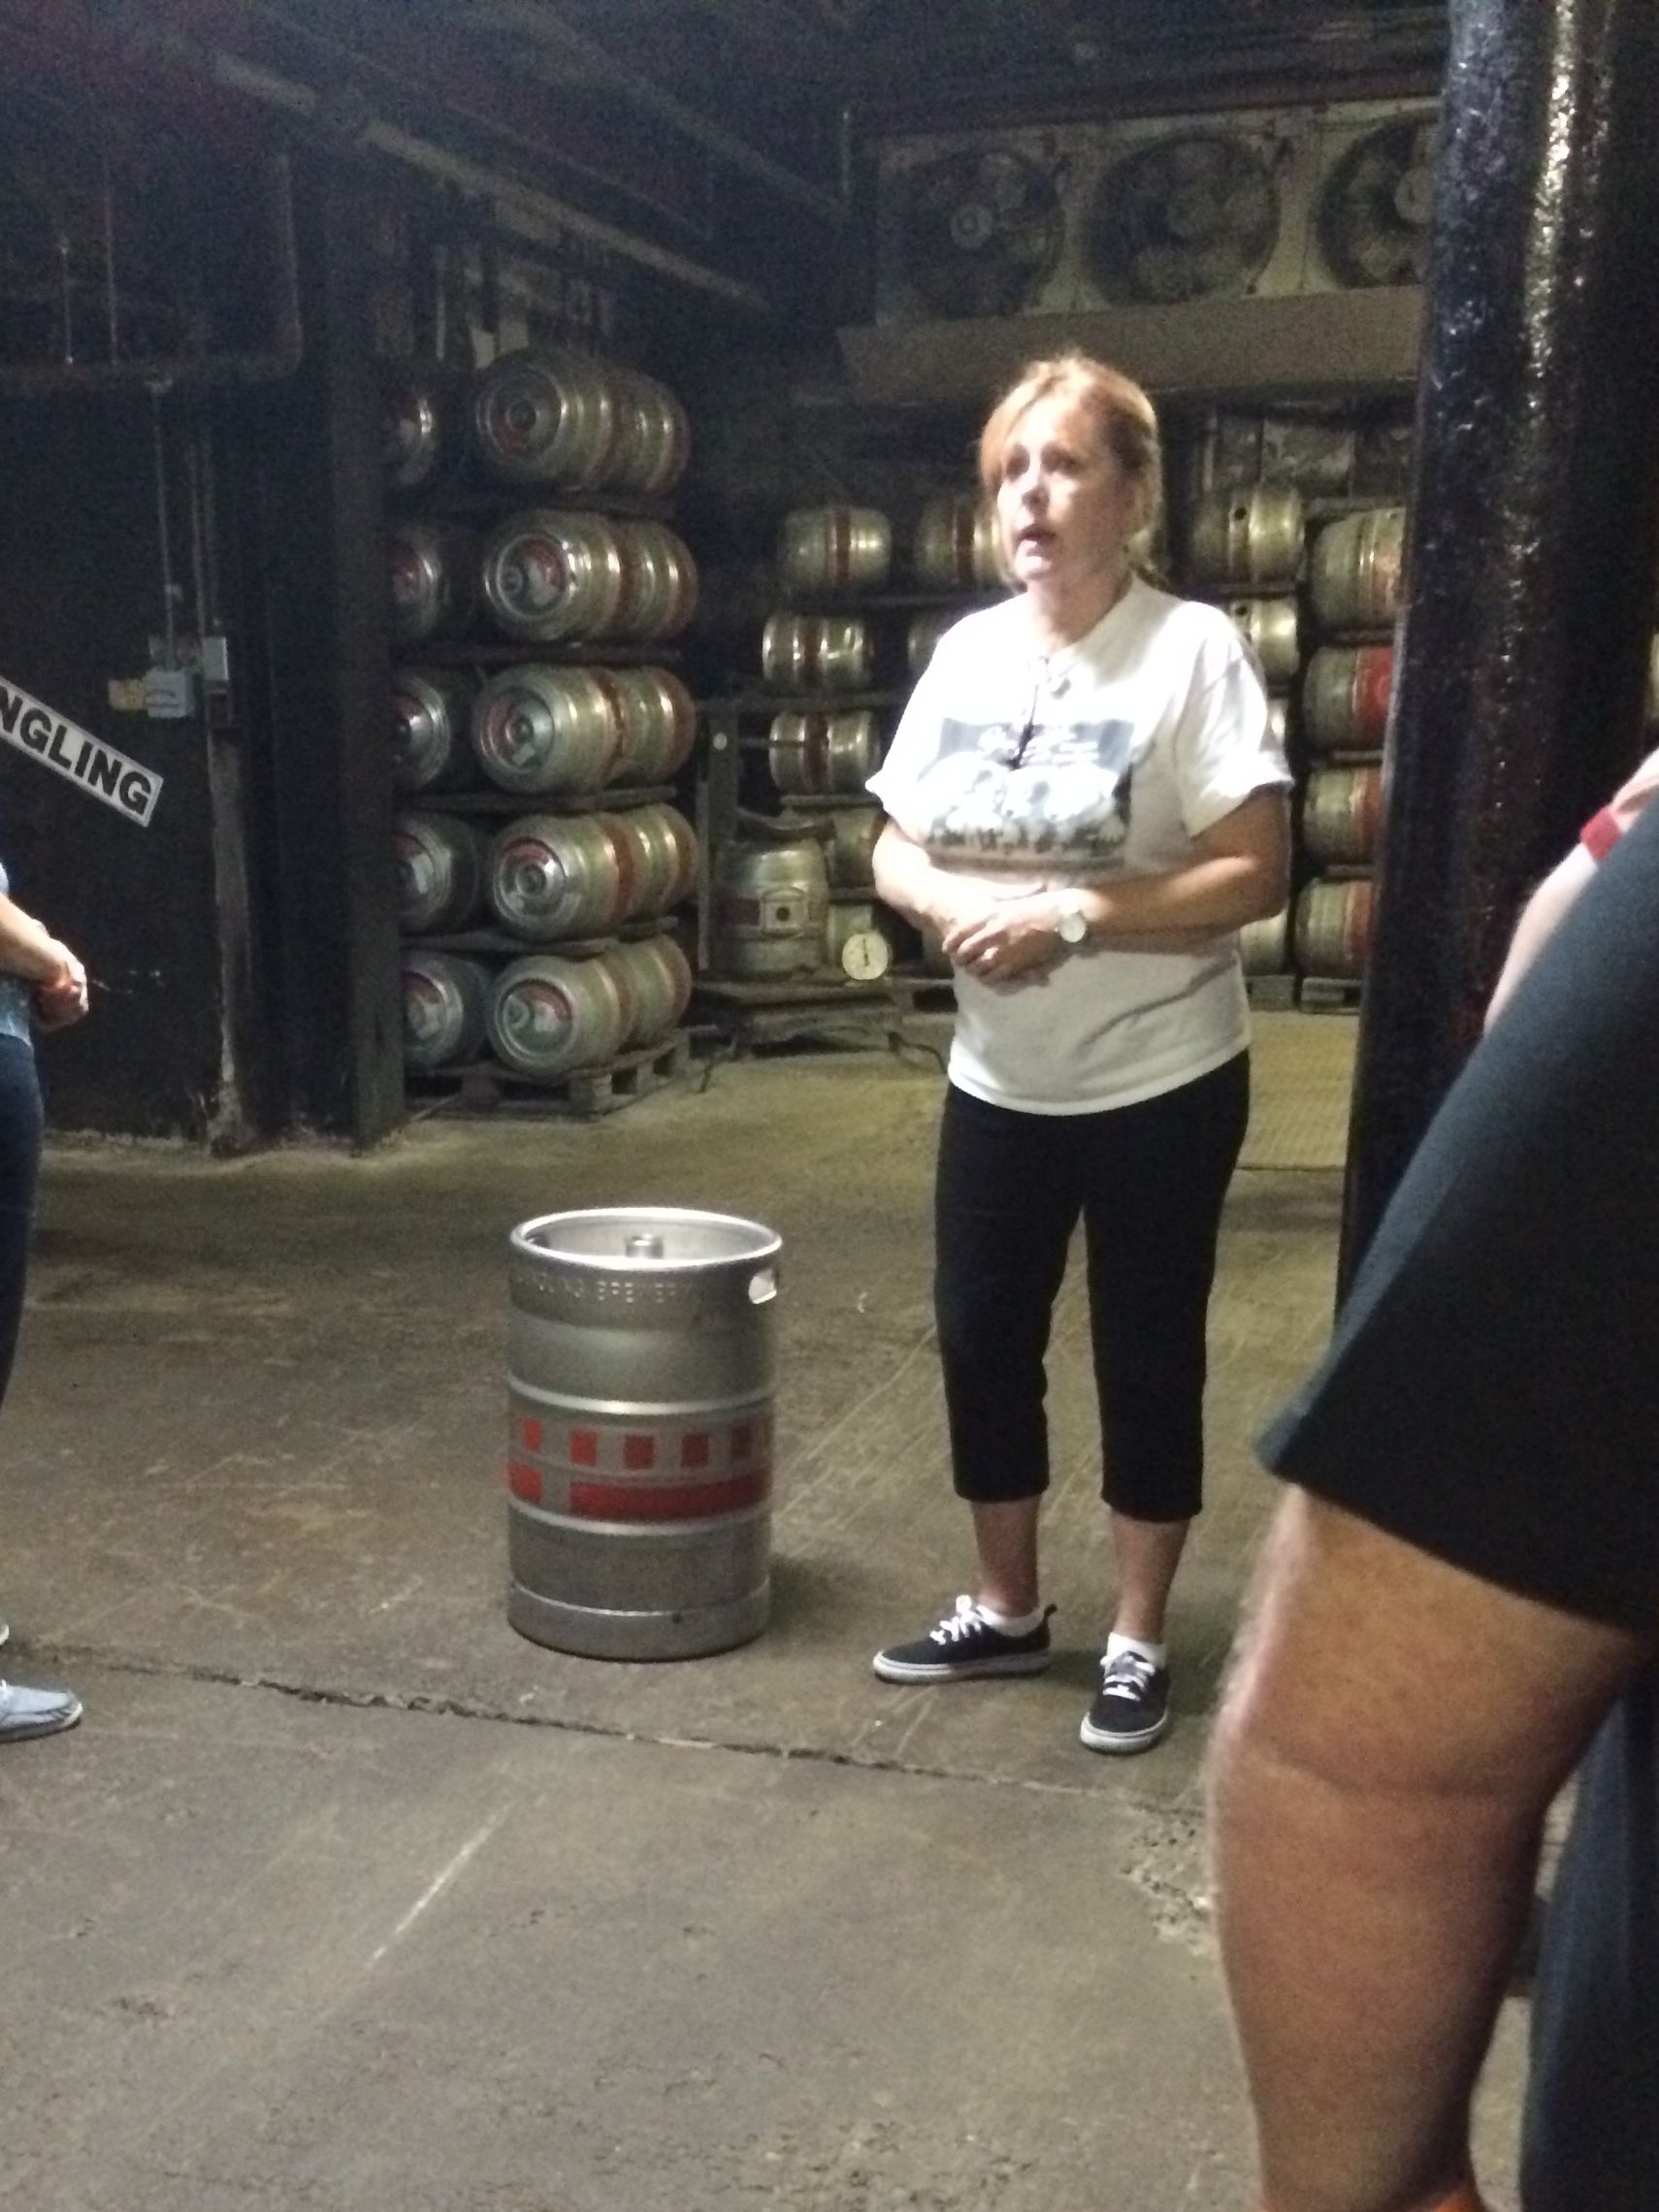 Sharon, the tour guide, with a modern keg